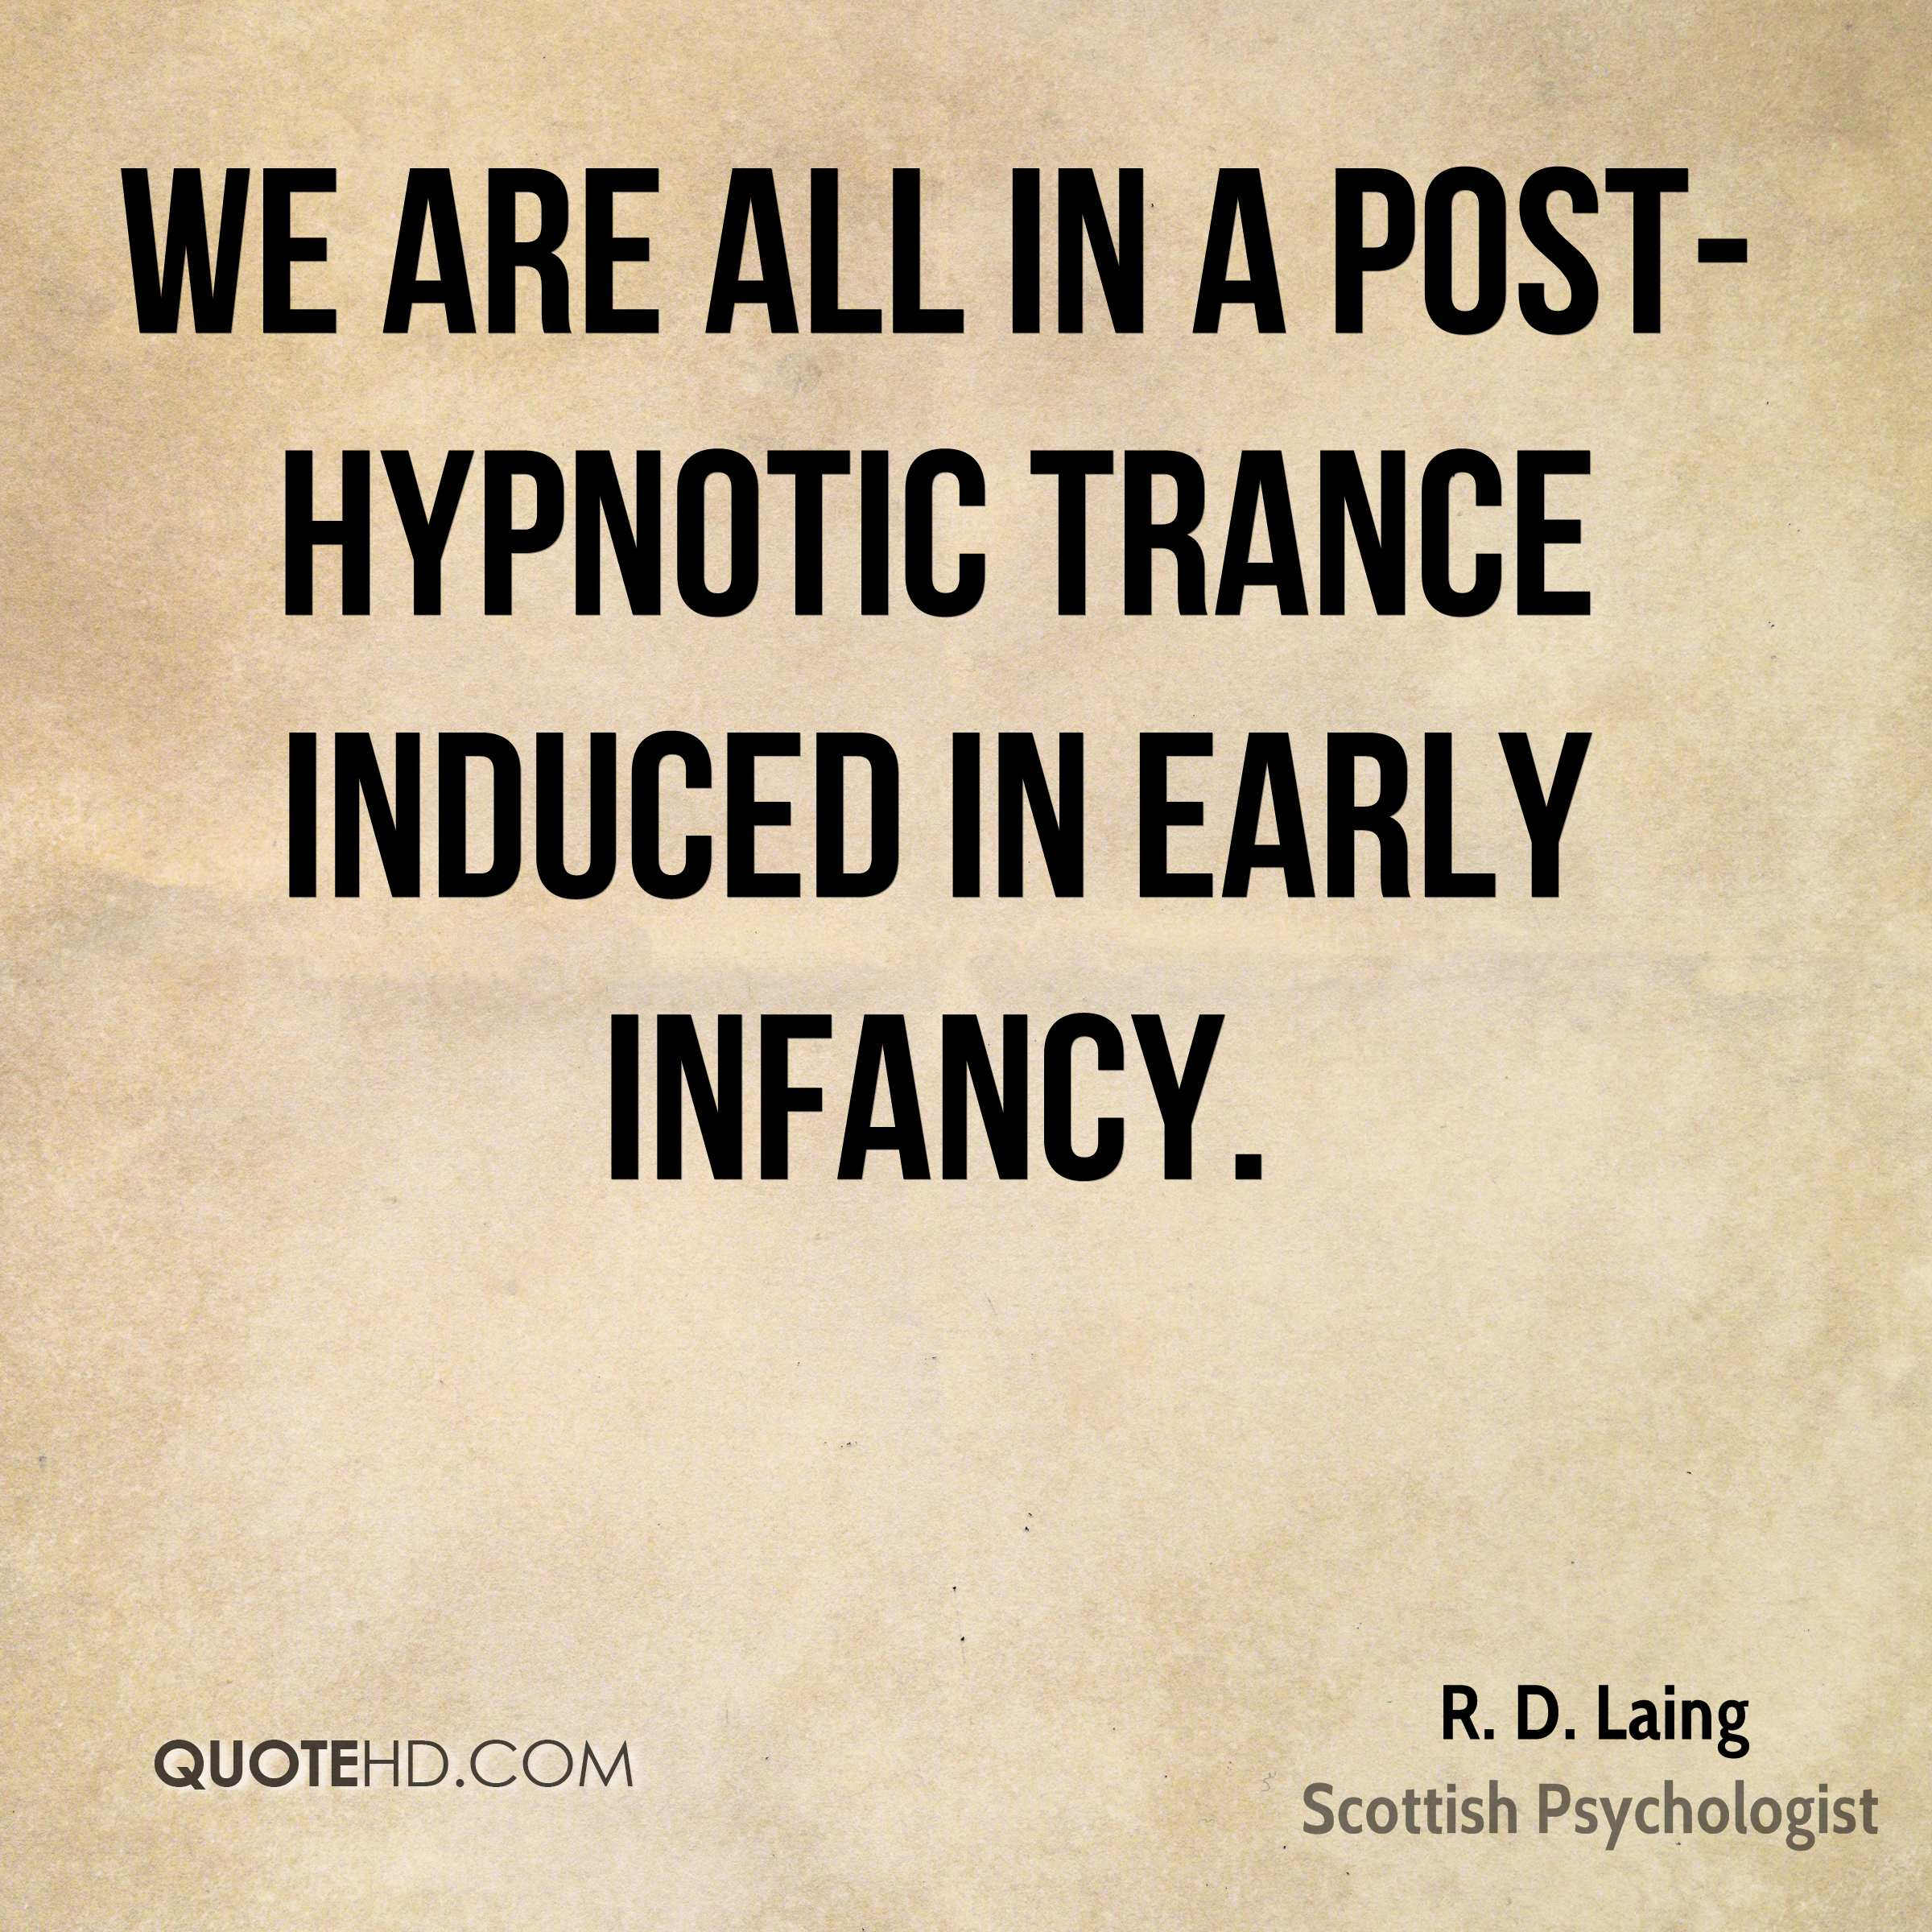 We are all in a post-hypnotic trance induced in early infancy.